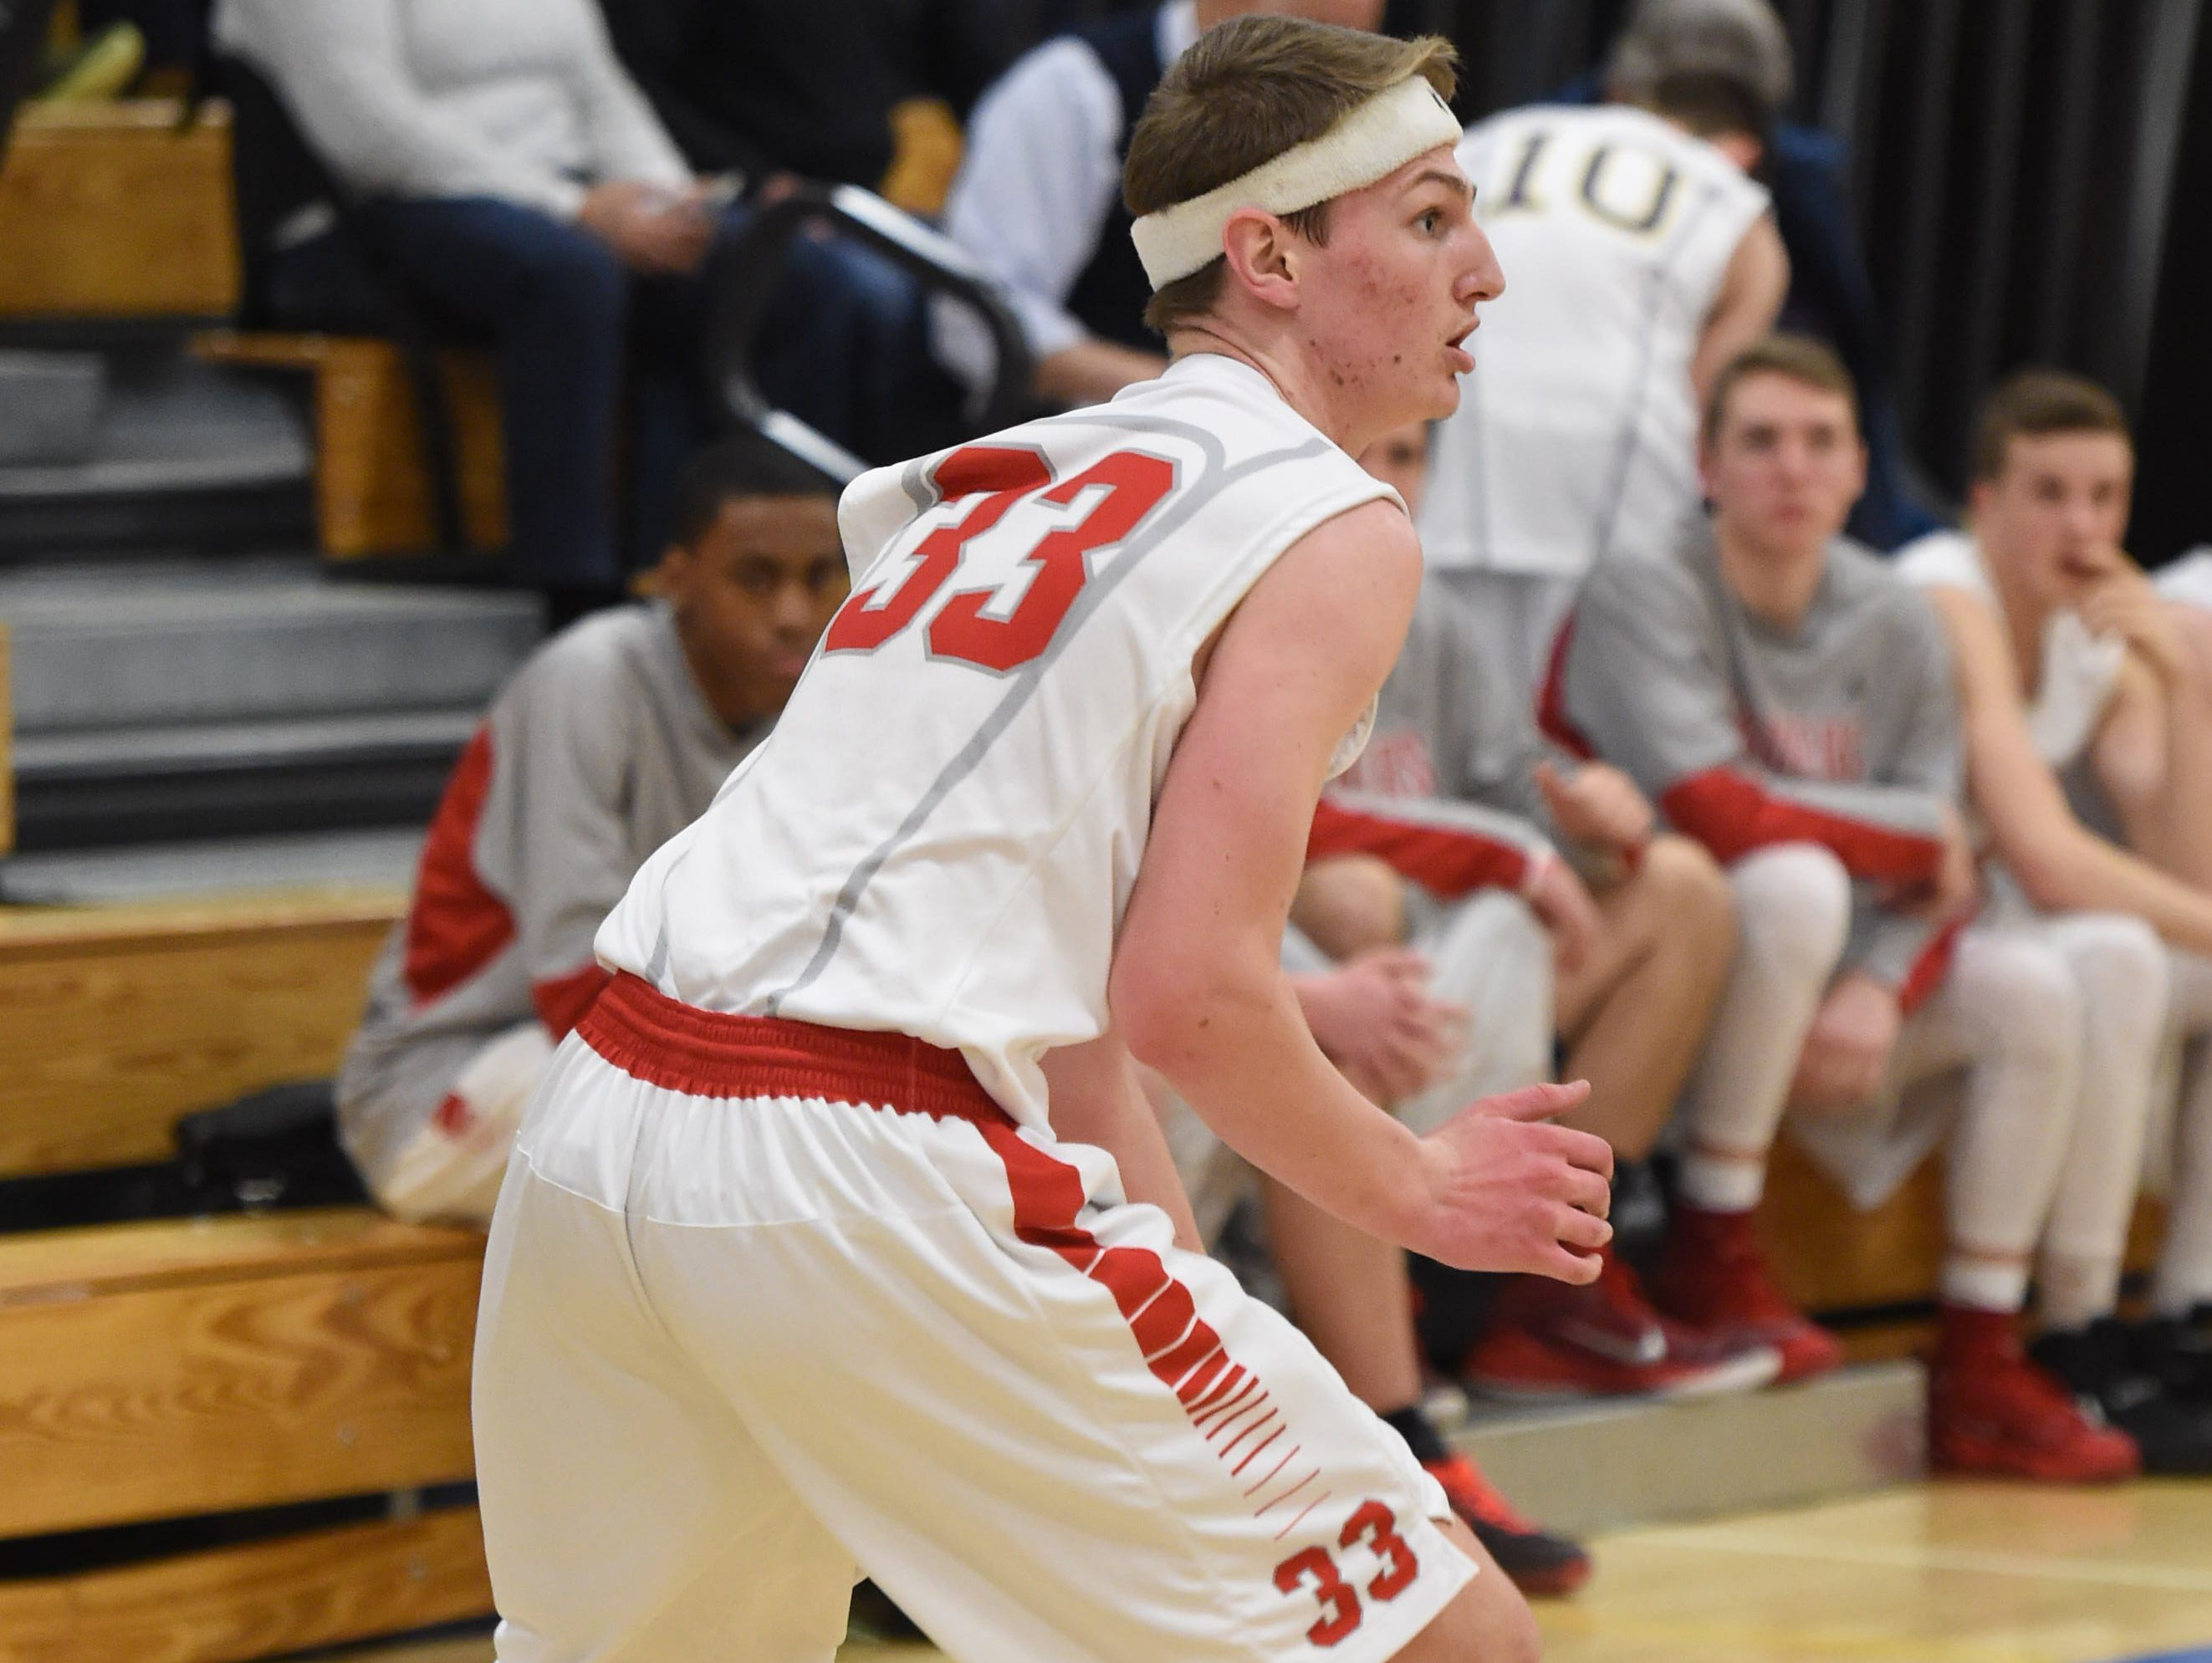 Red Hook High School's Colin Bemis looks to make a move against Poughkeepsie in the Mid-Hudson Athletic League semifinals on Feb. 17 at SUNY Ulster.